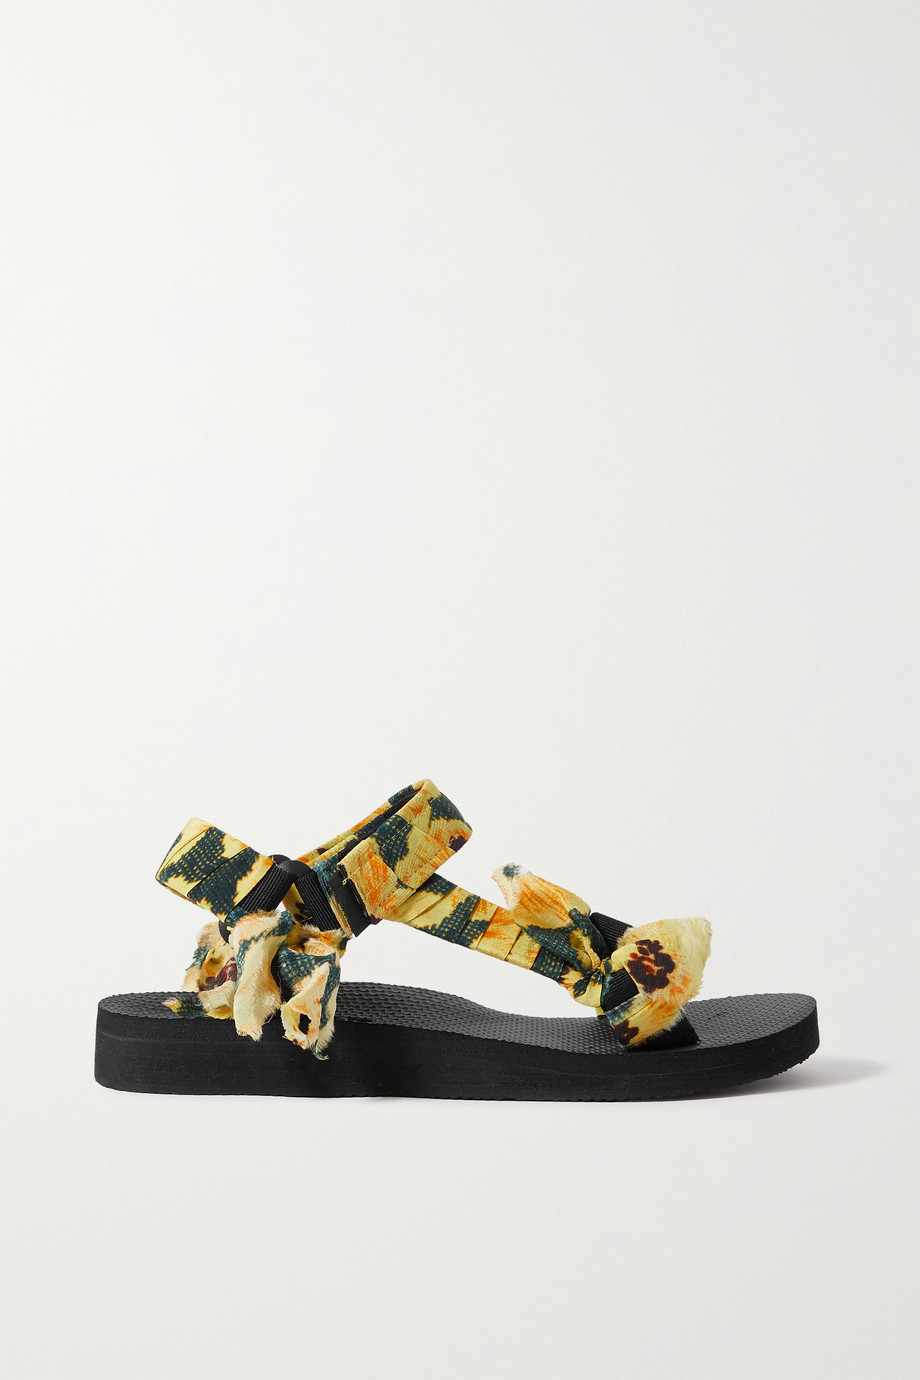 ARIZONA LOVE + Jason Wu Trekky floral-print gauze-trimmed canvas sandals